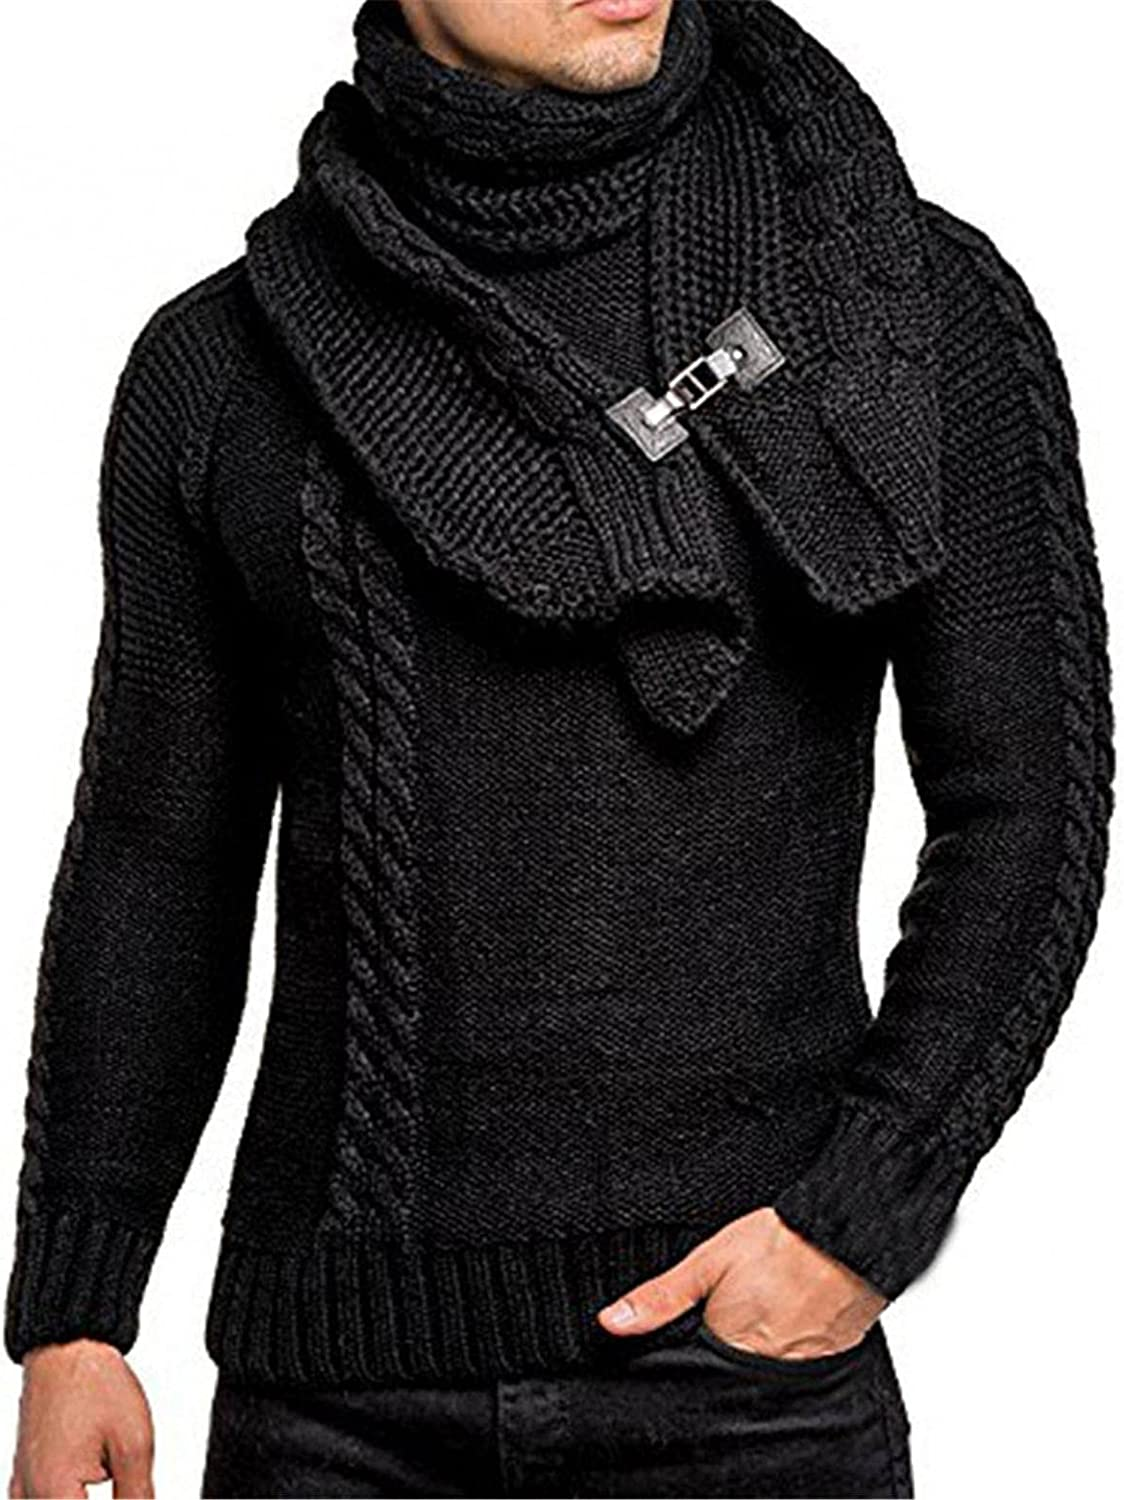 Men's Turtleneck Knitted Hoodies Sweaters Winter Long Sleeve Drawstring Casual Hoodies Pullover Jumper for Mens